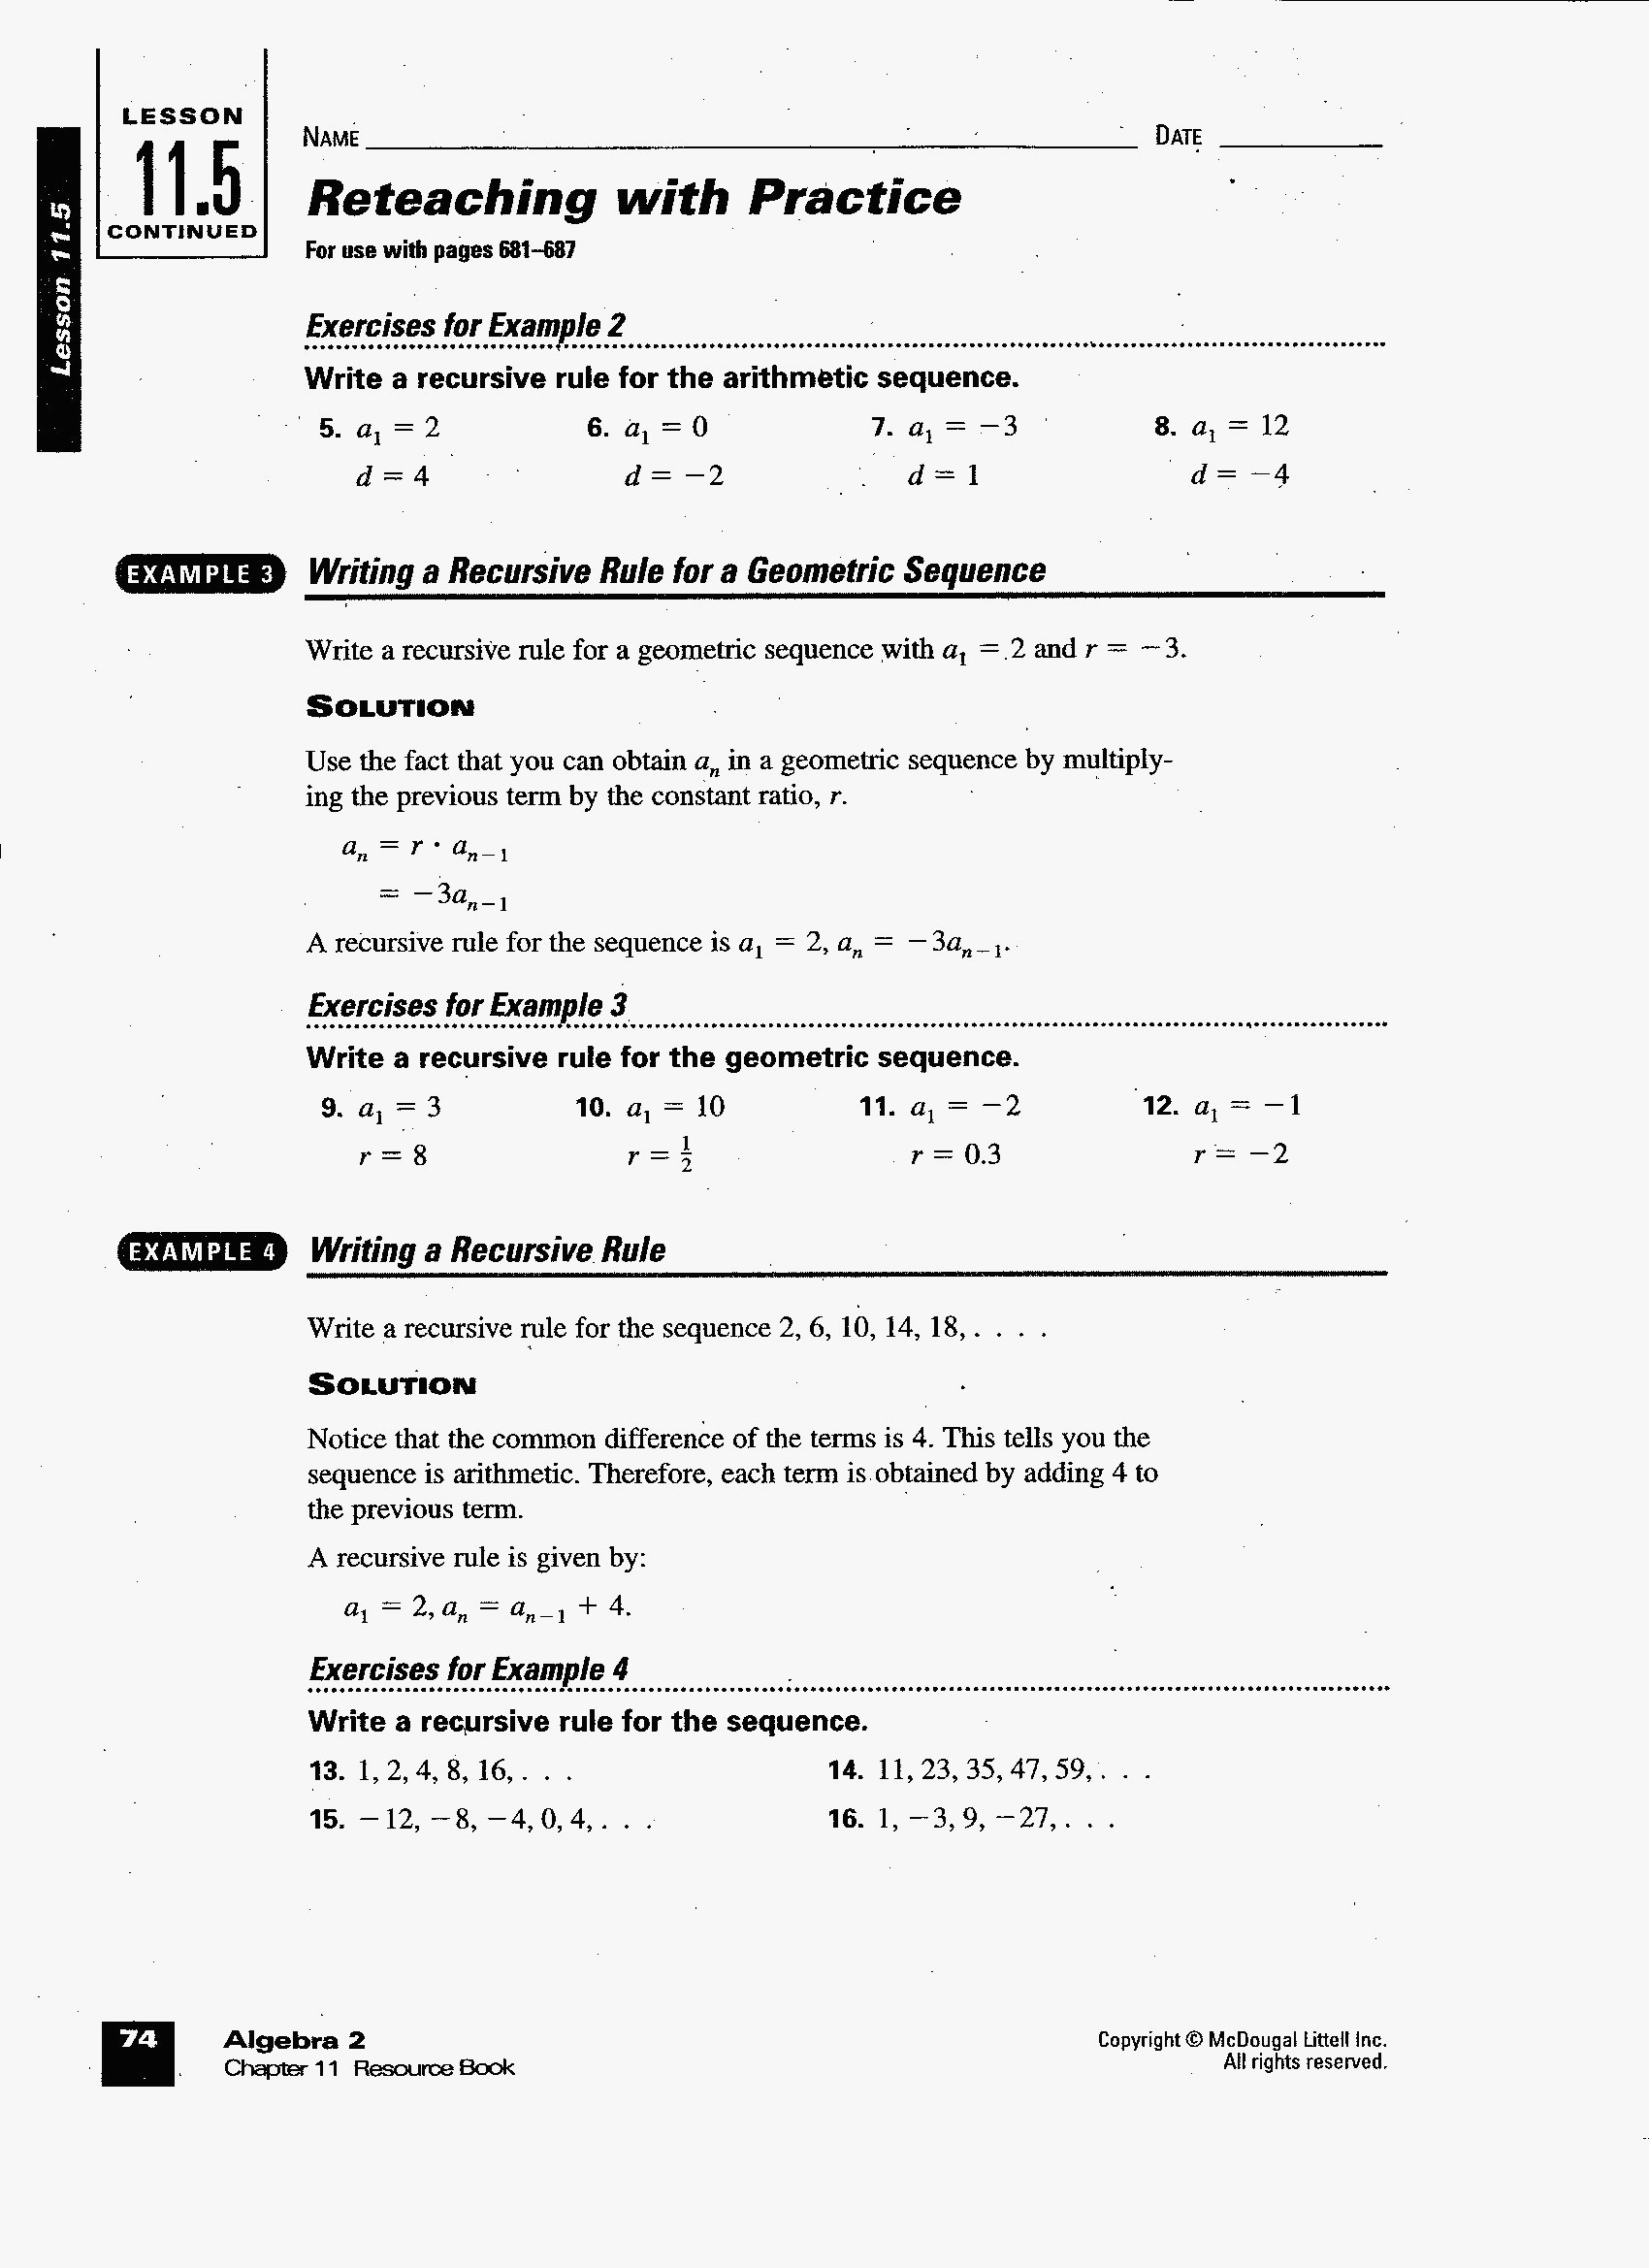 62 Unique Of Sequences Practice Worksheet Pictures